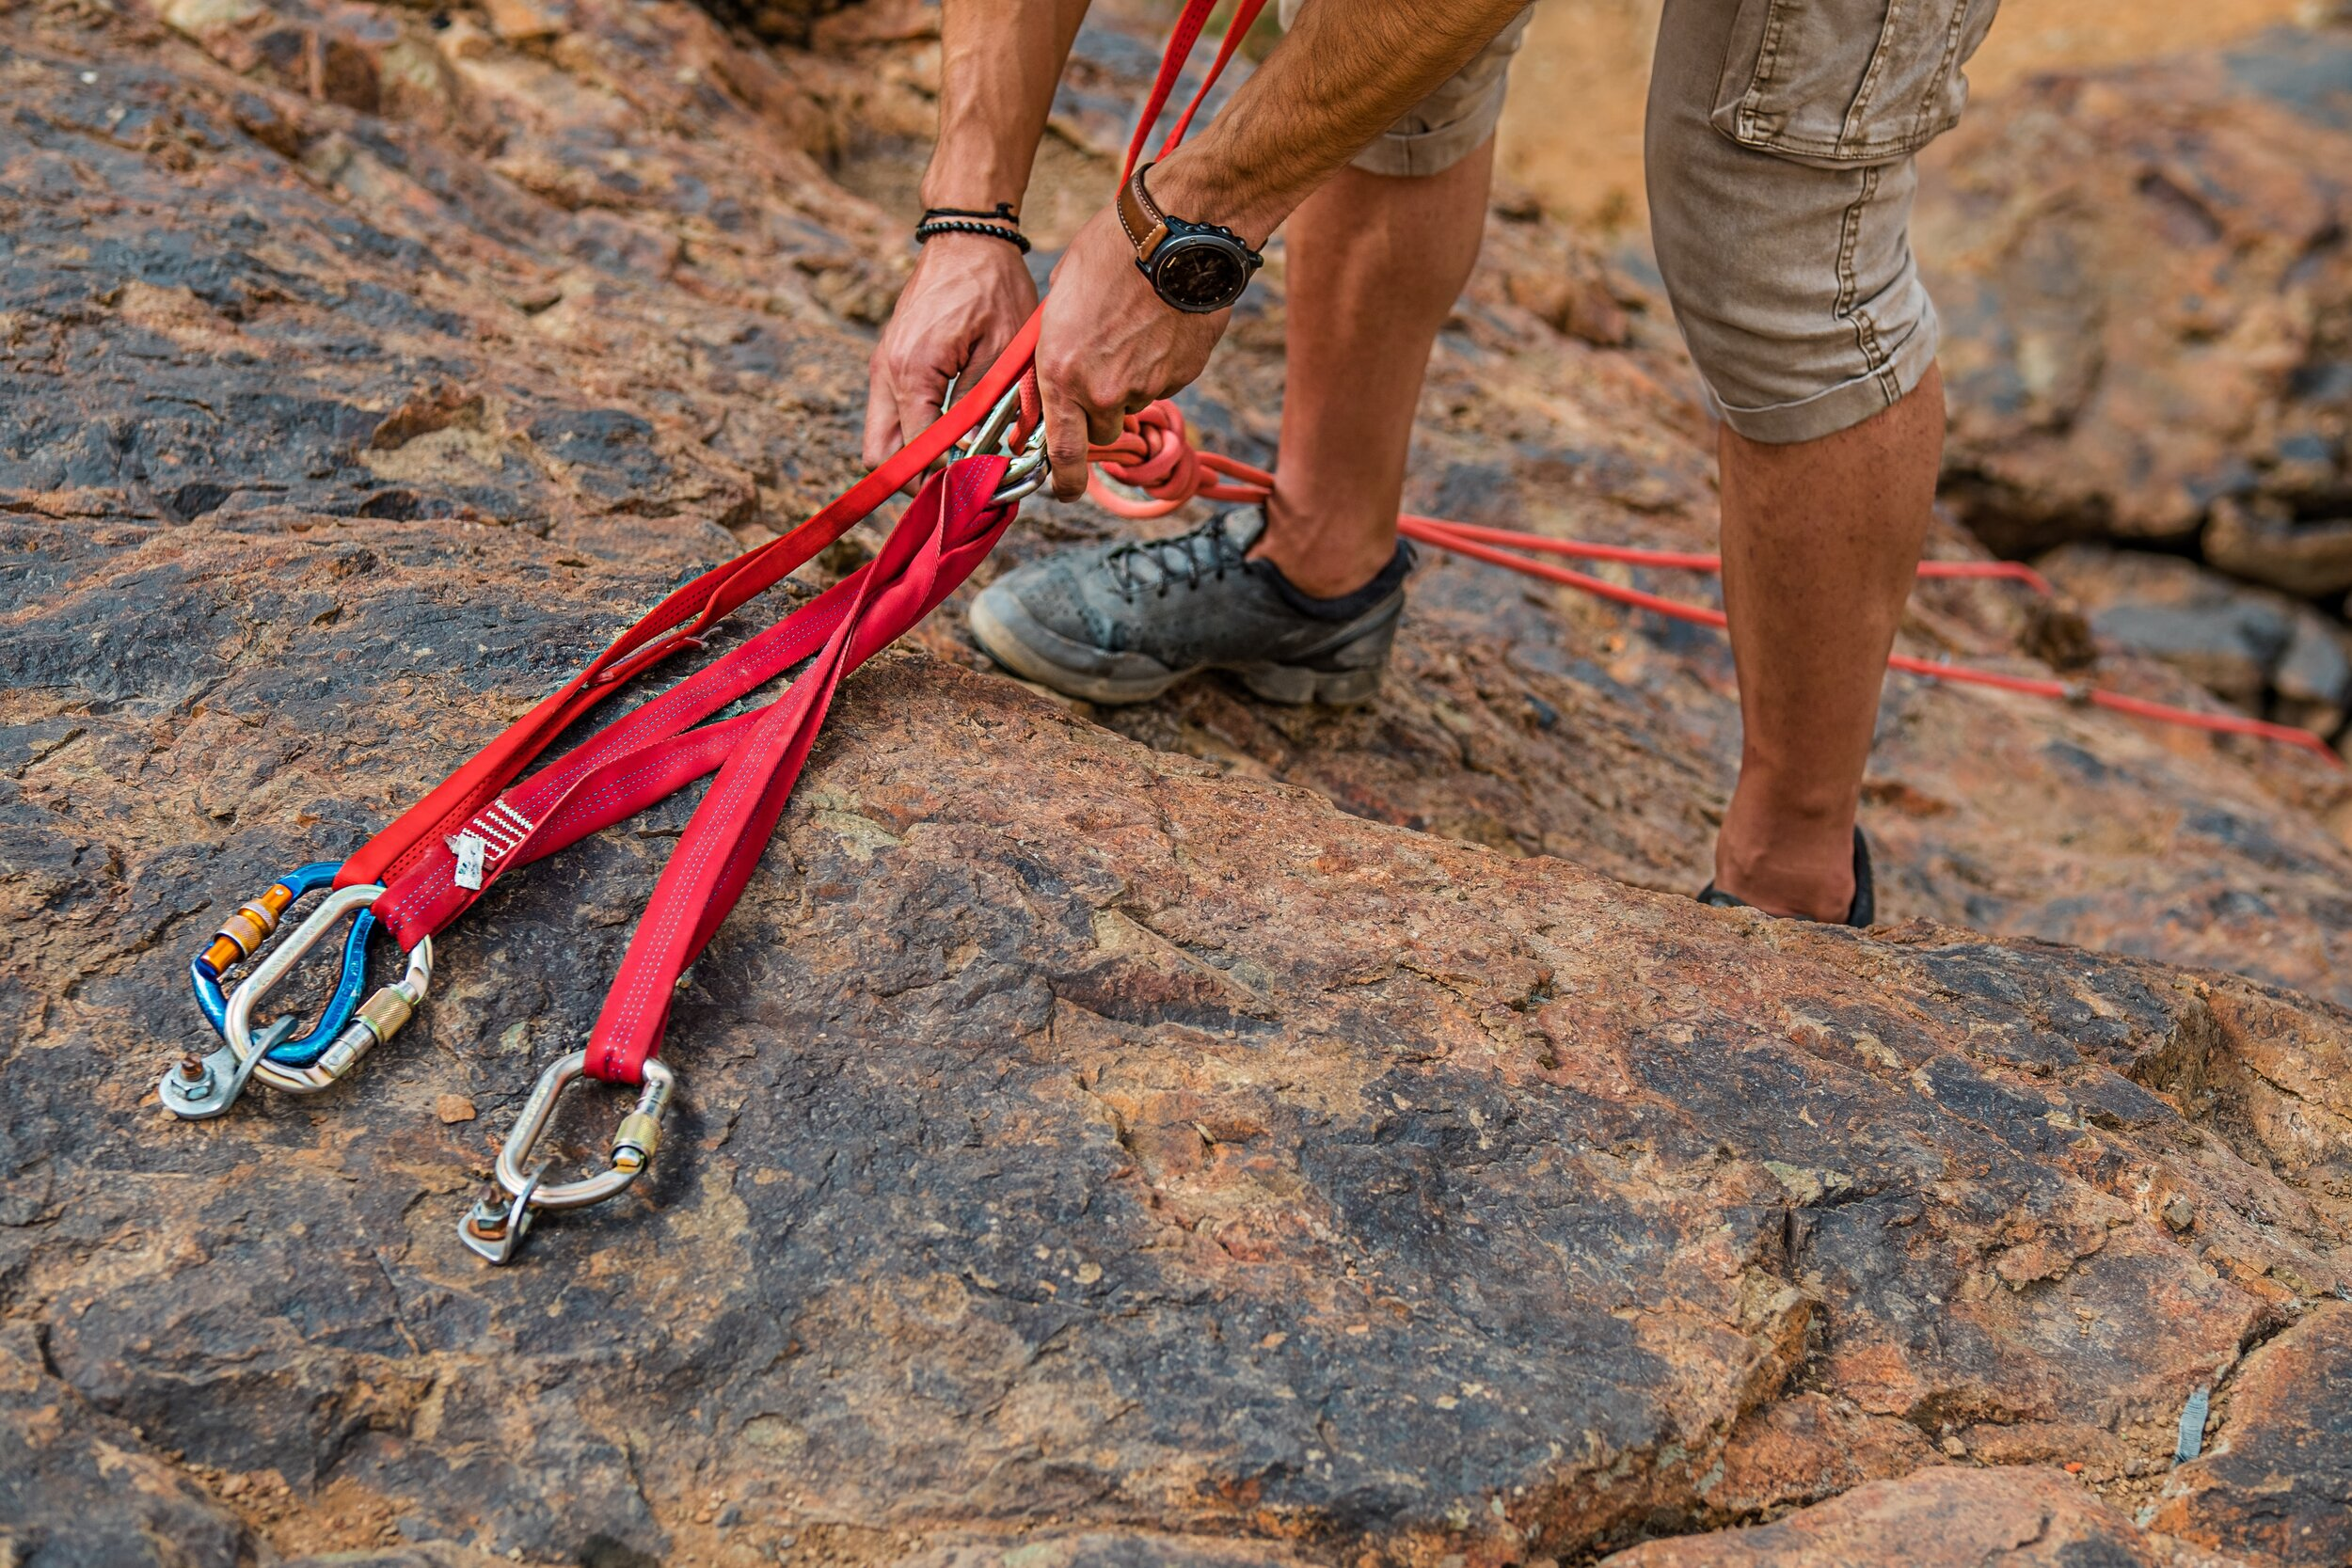 person setting up rock climbing gear